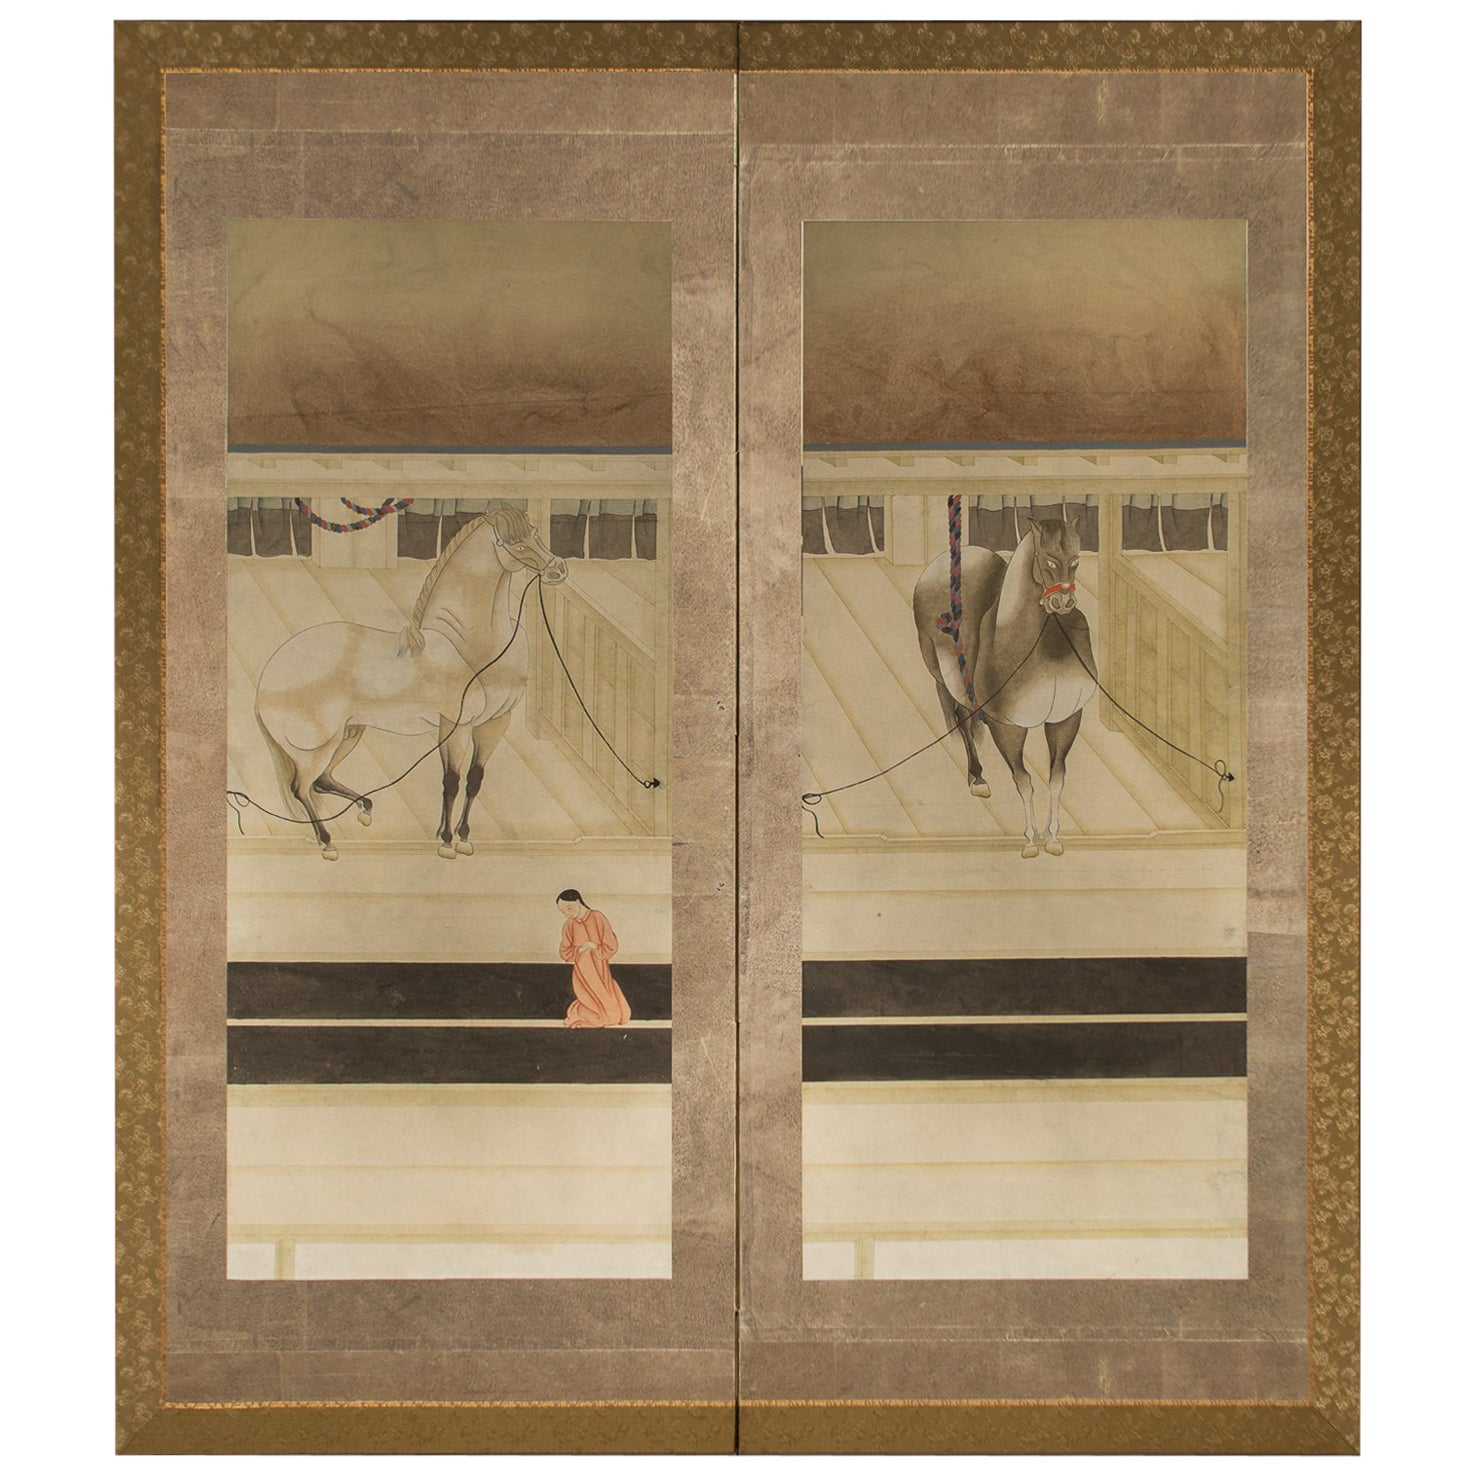 Japanese Two-Panel Screen, Horses in Stable with Attendant